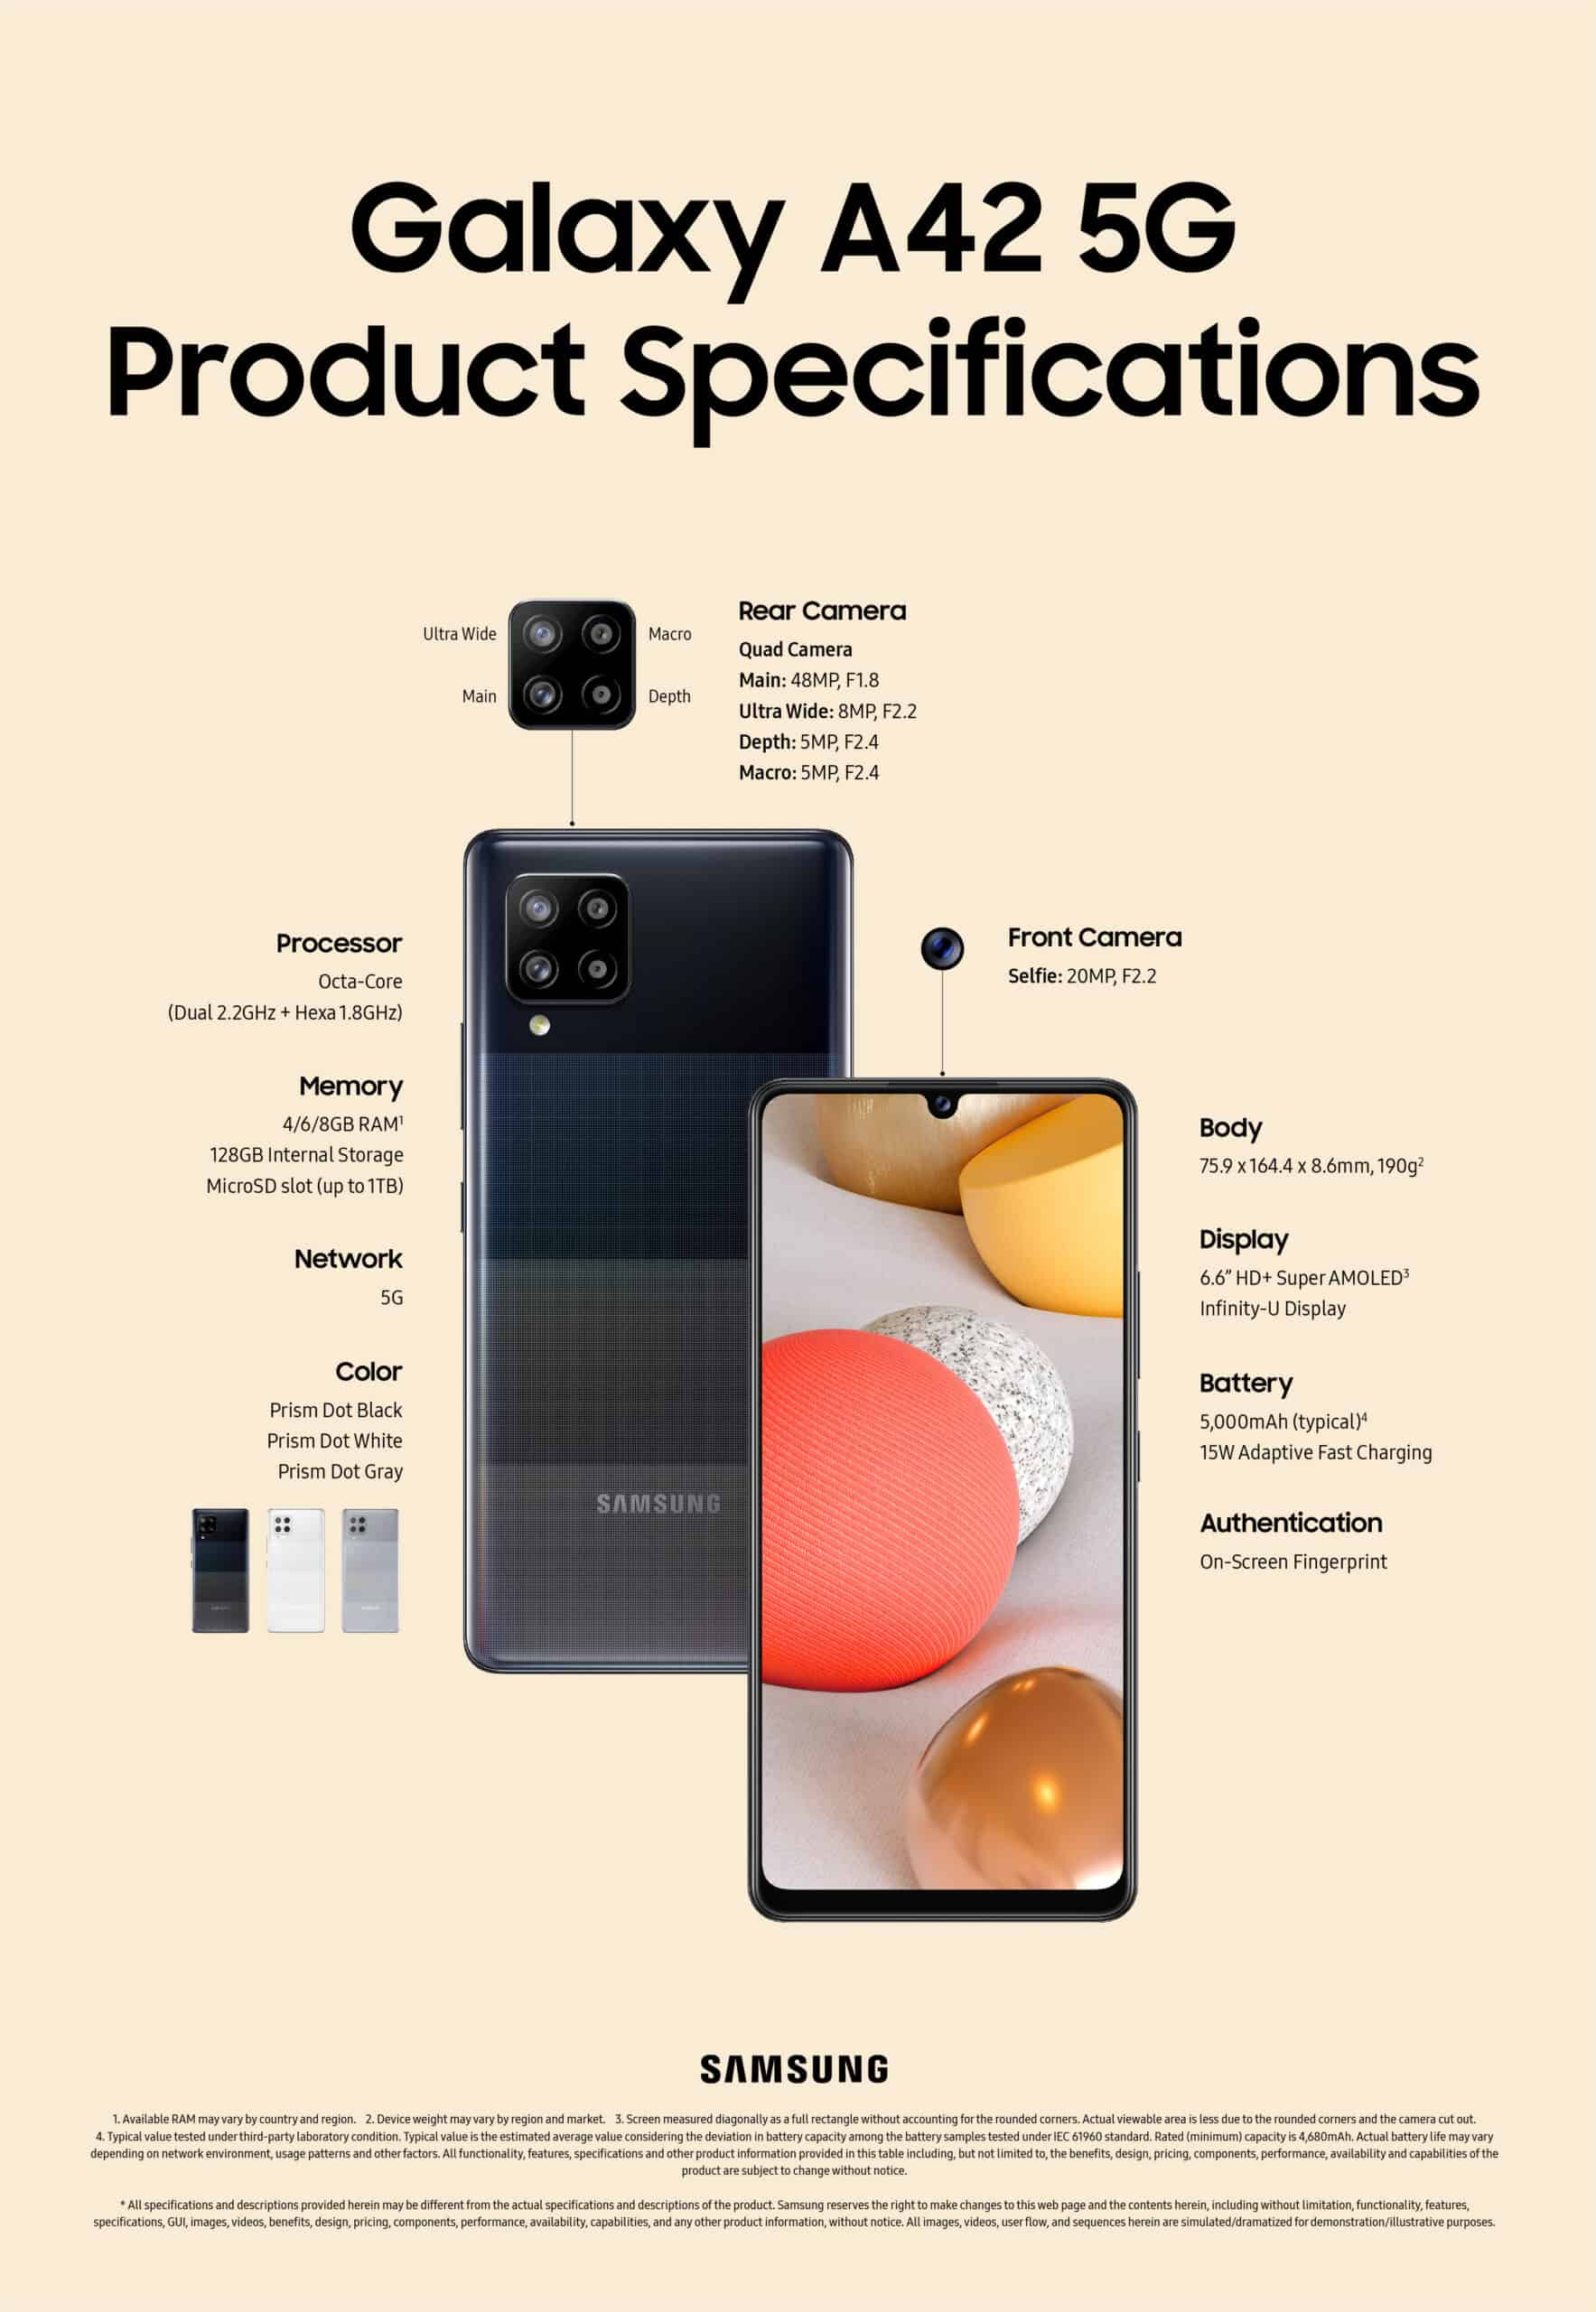 Galaxy A425G product specifications